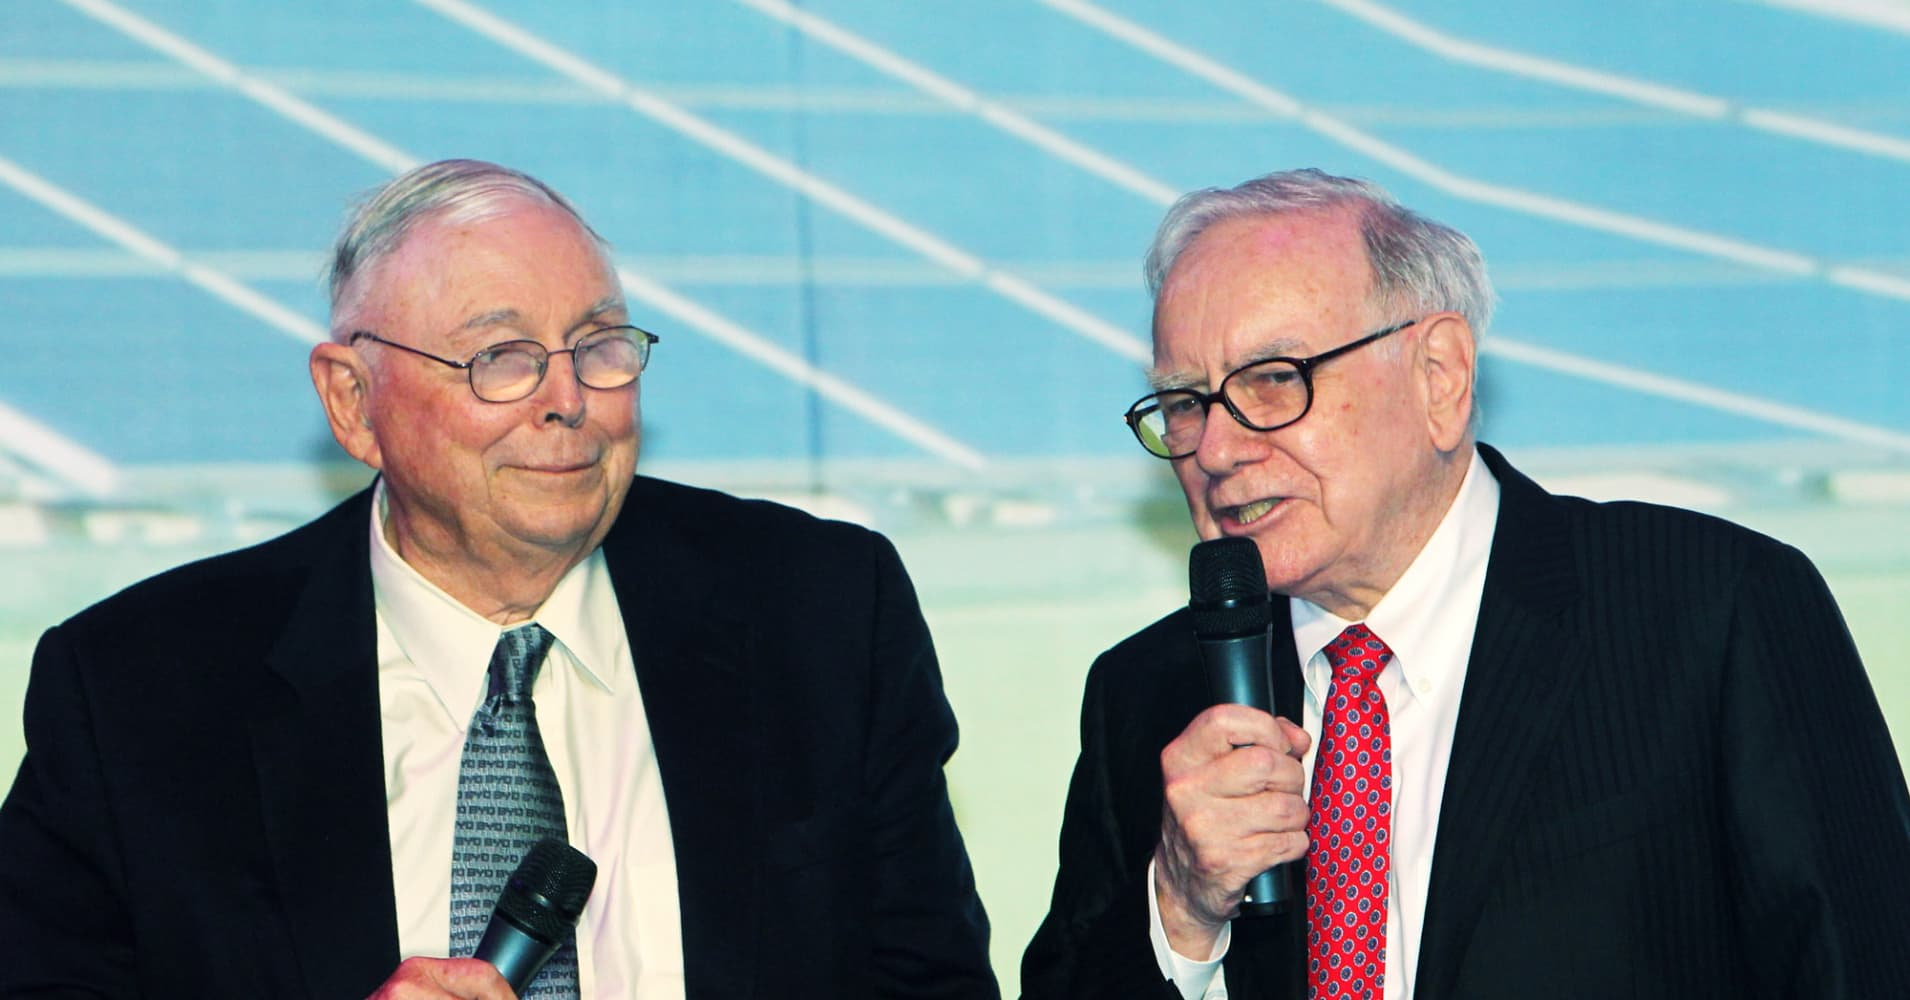 3 tips Warren Buffett and Charlie Munger once gave a 14-year-old shareholder